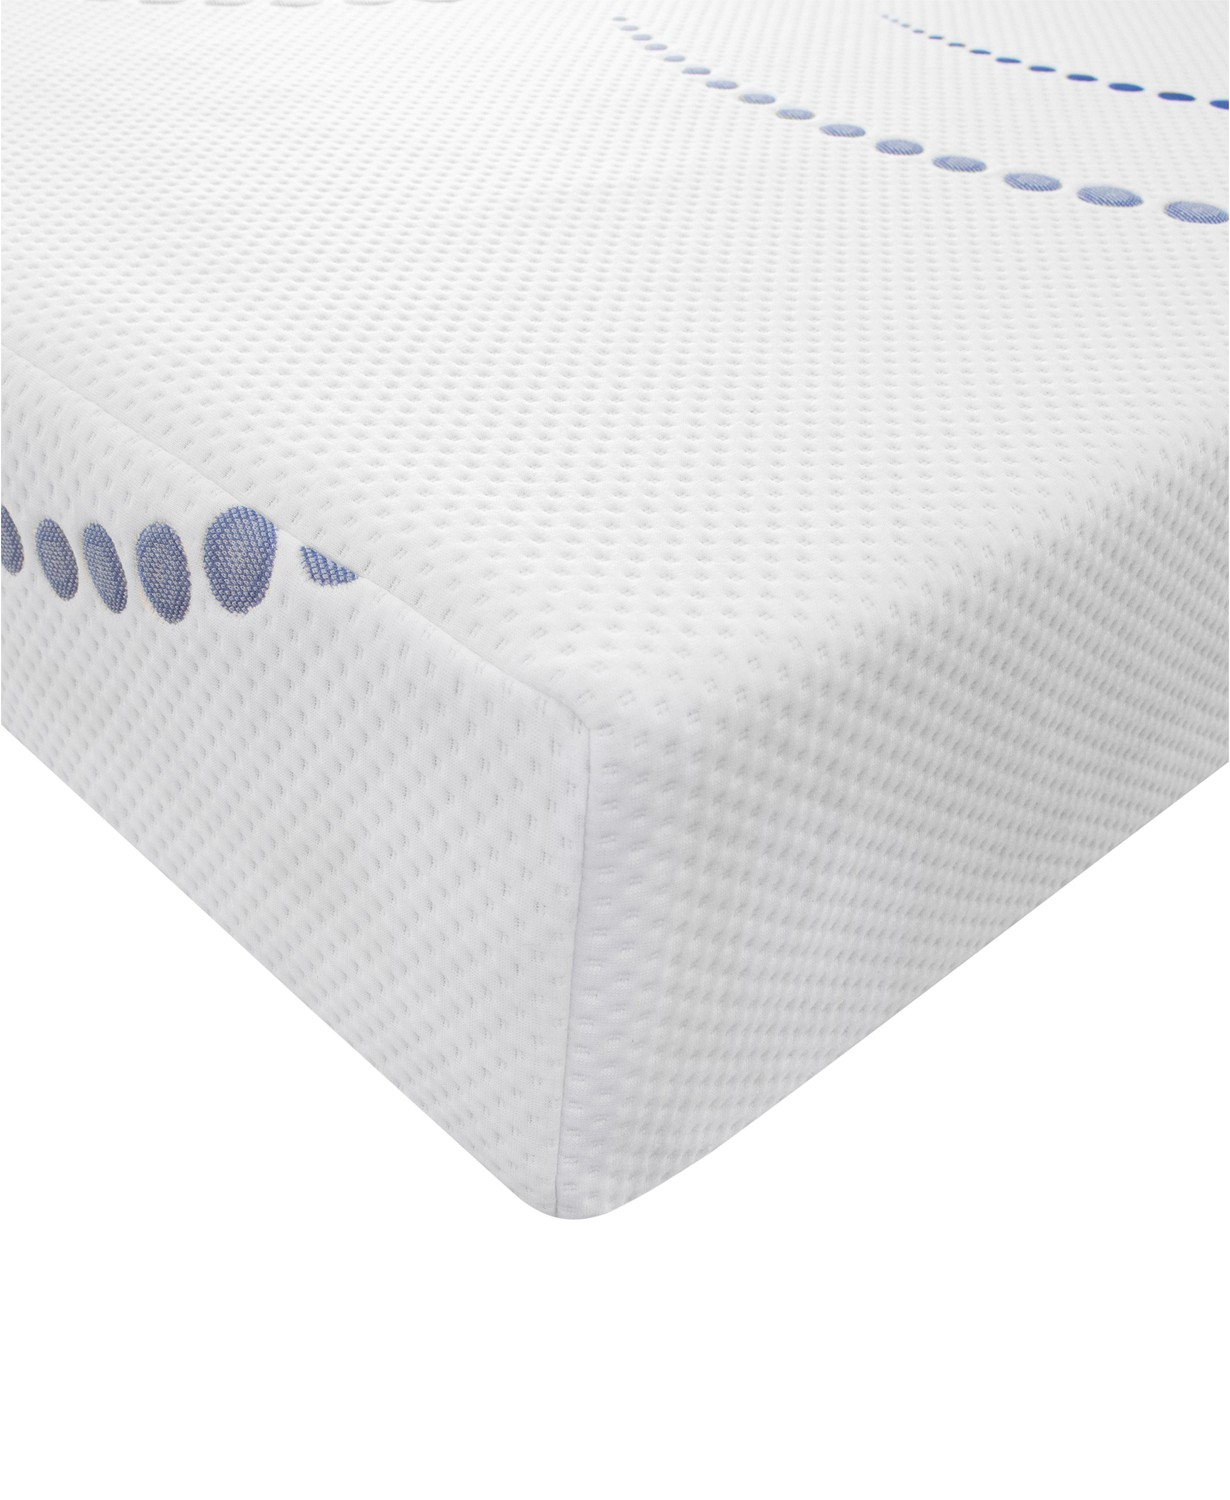 Up to 60% off Mattress In A Box - $164-$1,209 with Shipping